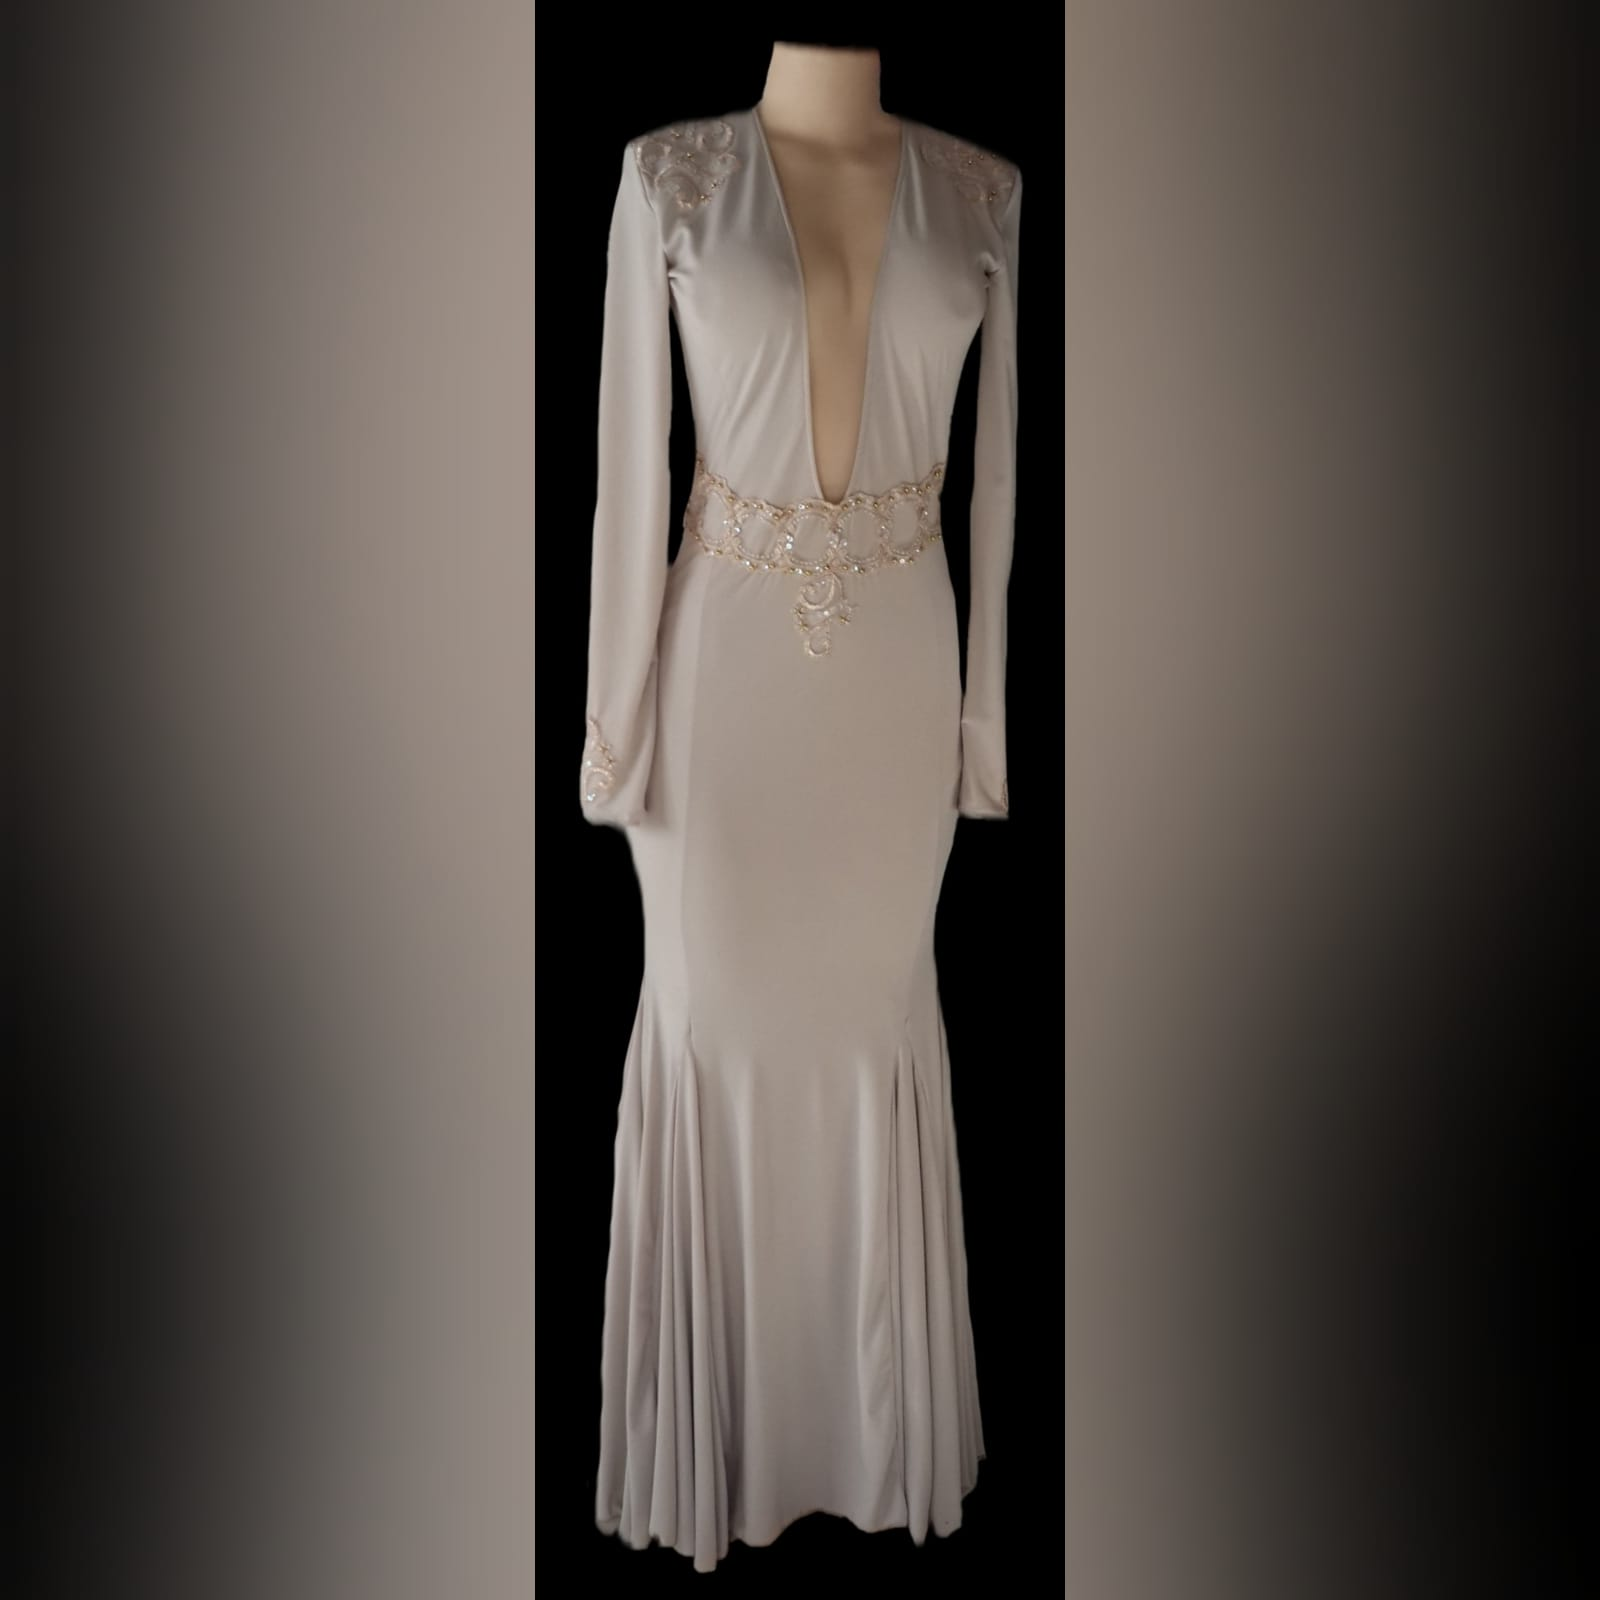 Plunging neckline beige prom dance dress 5 beige soft mermaid, prom dance dress with a plunging neckline and a v back. With long sleeves, detailed with gold applique, with gold beads, creating a belt. Applique on the shoulders and sleeve cuffs.